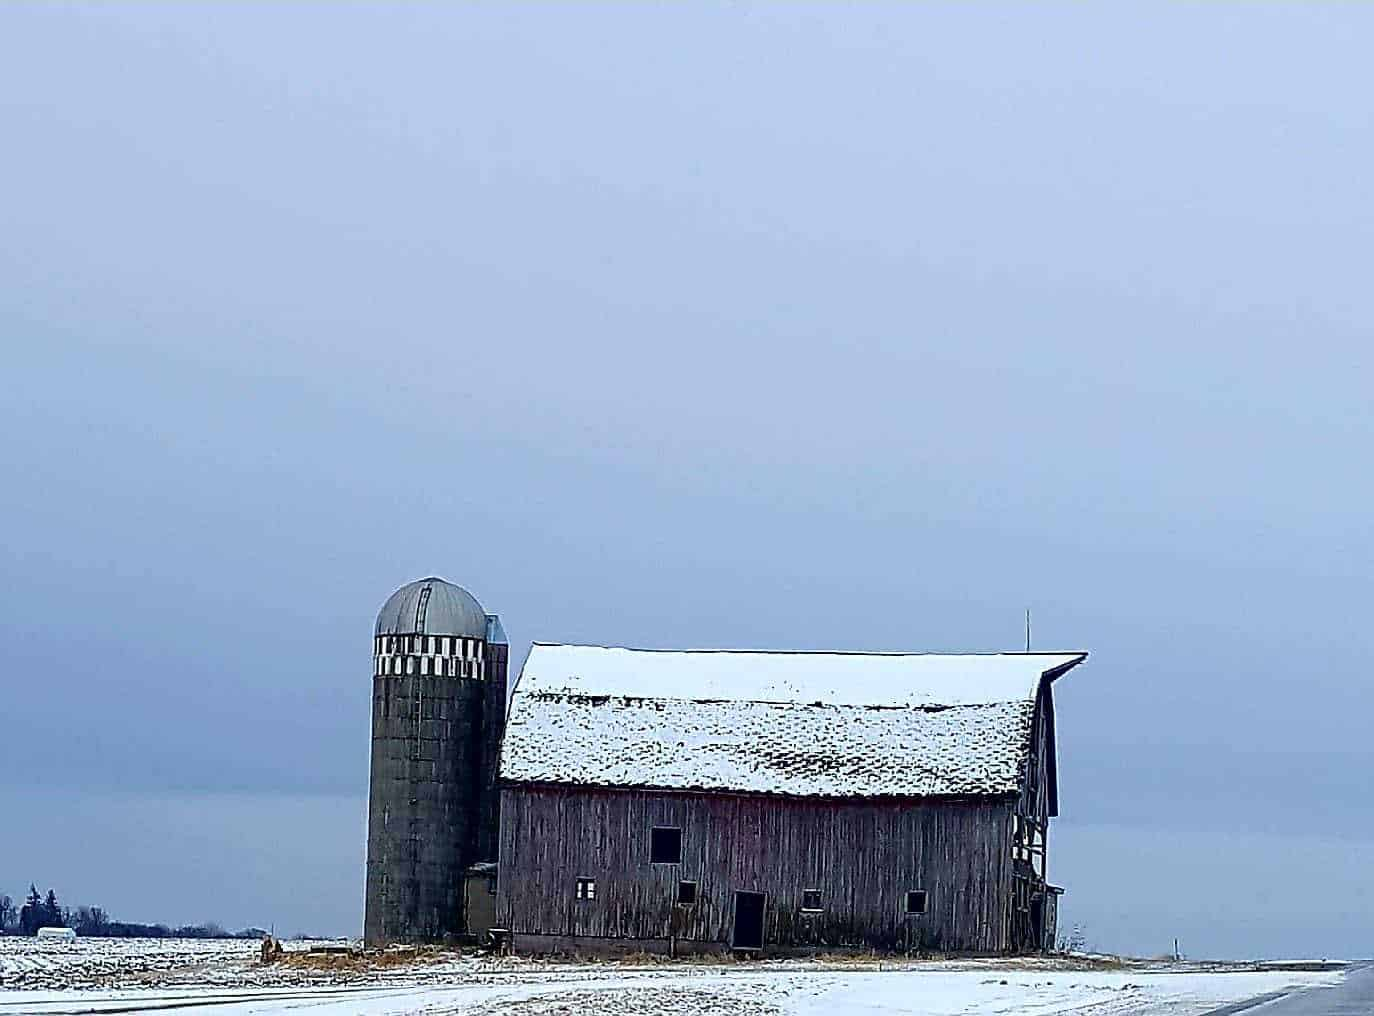 The old barn survived another early spring snow storm today outside Lansing Minnesota